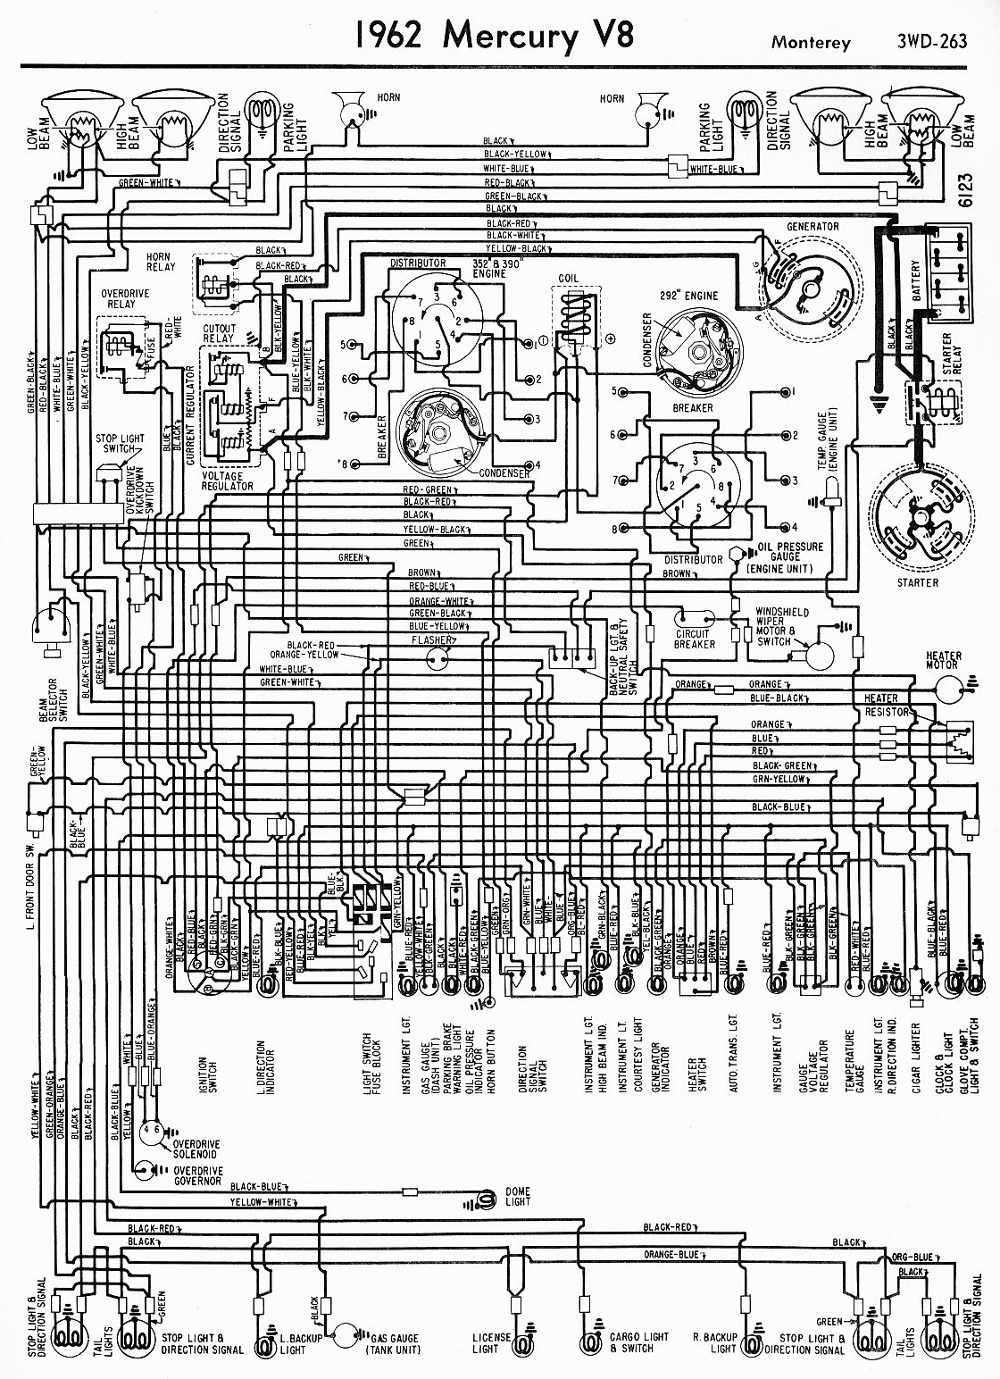 medium resolution of 1962 ford galaxie color wiring diagram mercury zephyr 1950 ford wiring diagram wiring diagram ford 1936